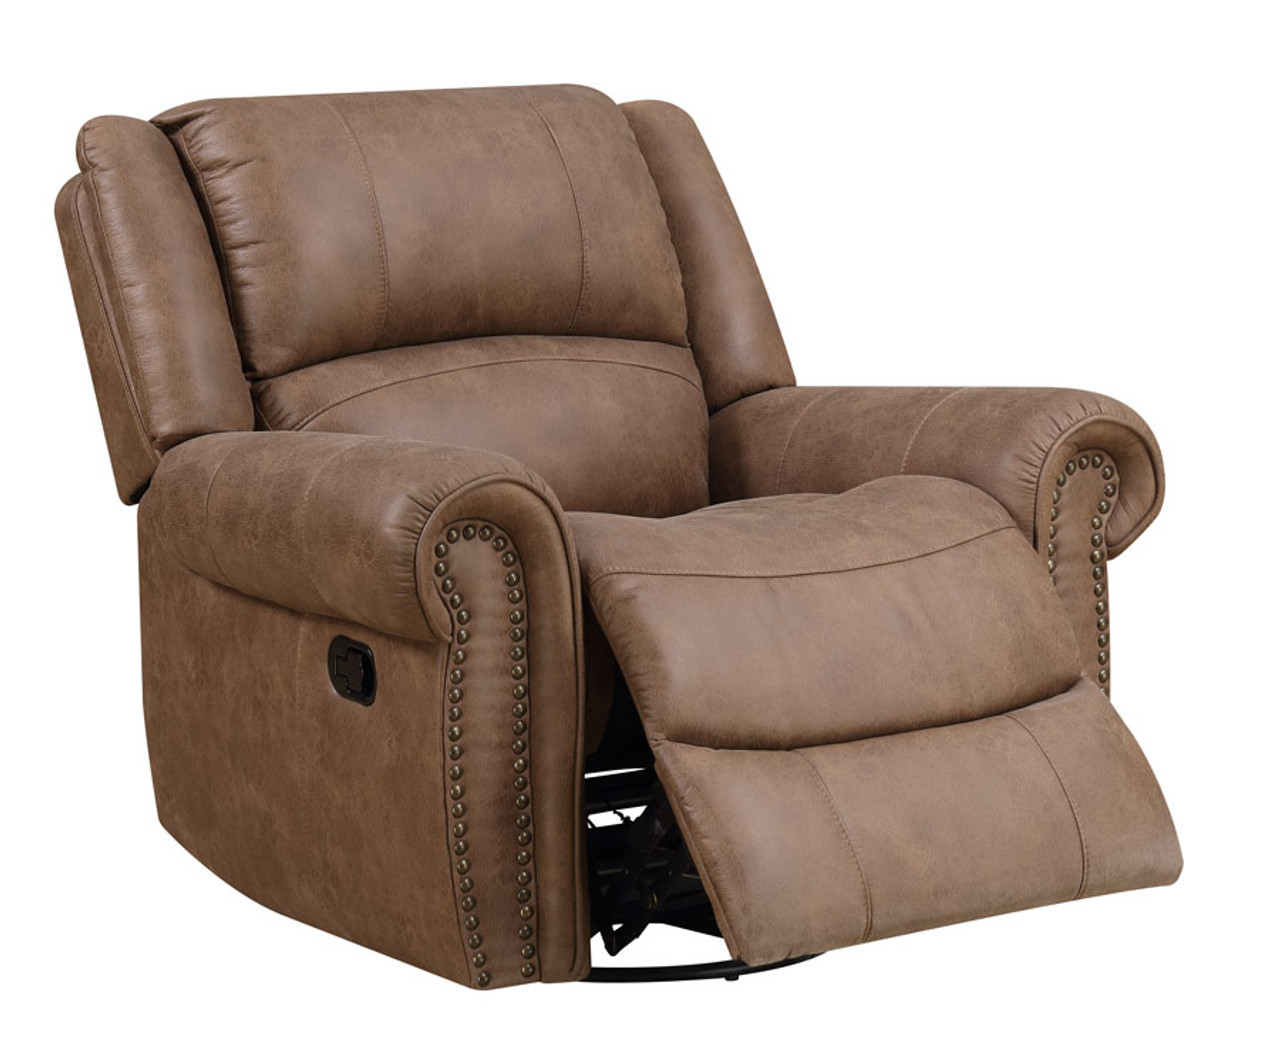 Wondrous Emerald Spencer Saddle Swivel Glider Recliner Caraccident5 Cool Chair Designs And Ideas Caraccident5Info